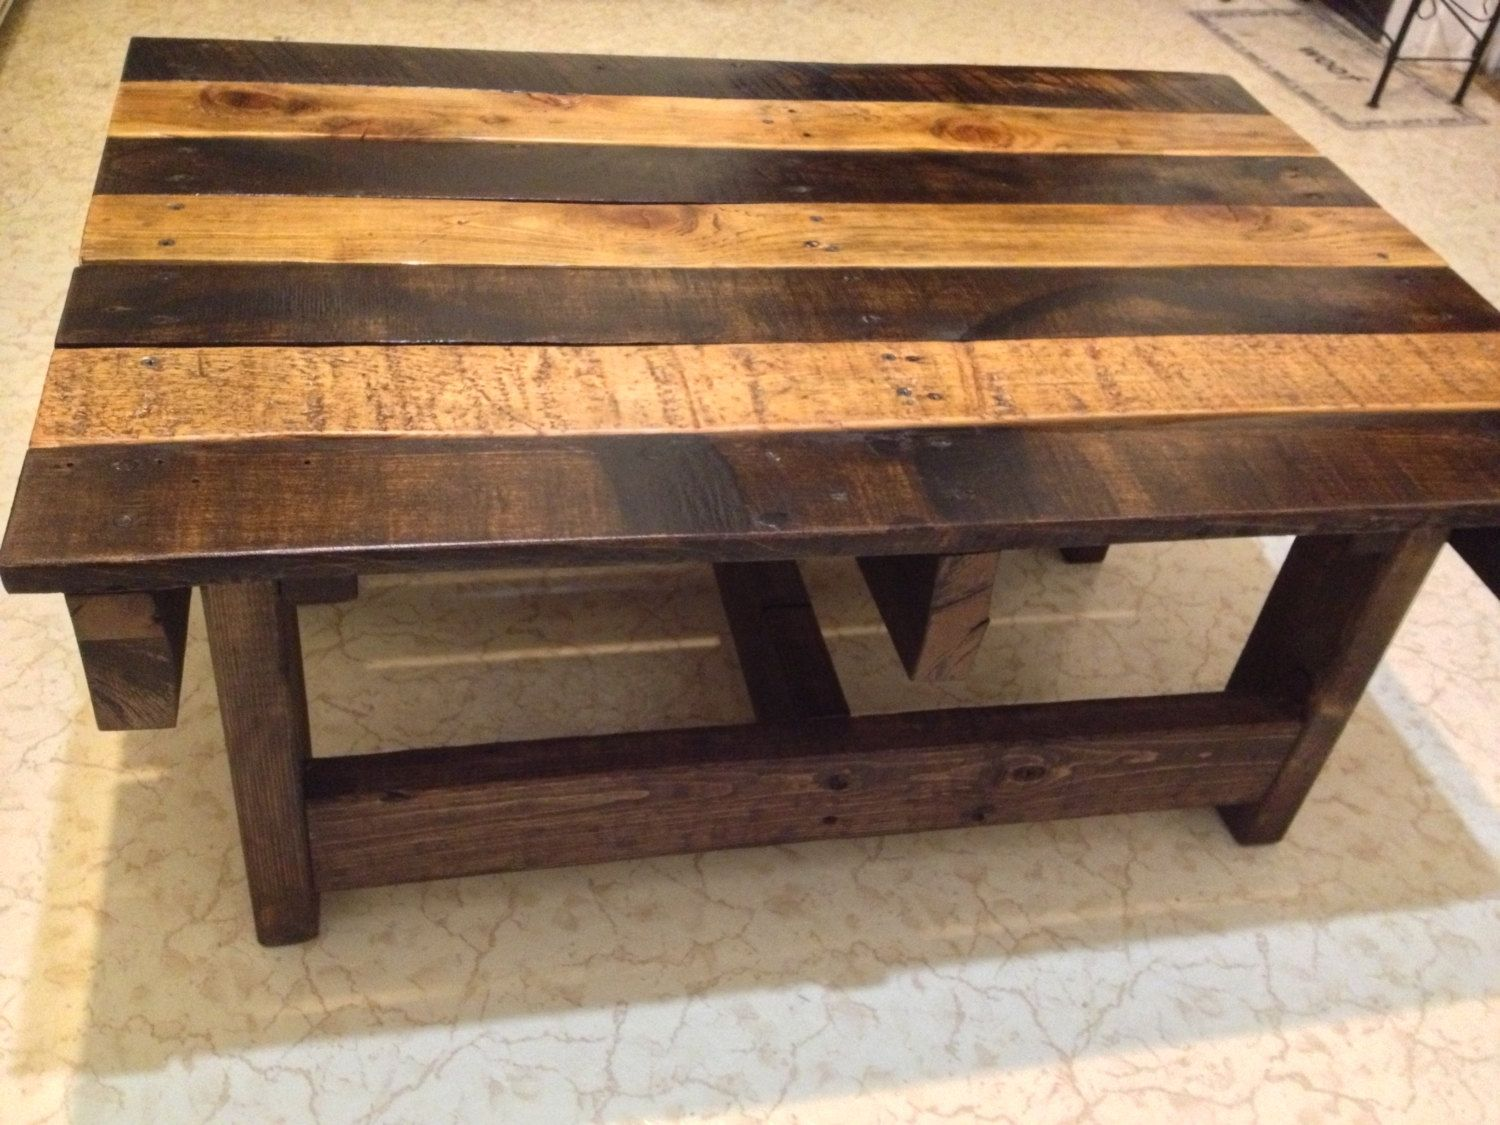 Wood Pallet Coffee Table ~ Hand crafted handmade reclaimed rustic pallet wood coffee